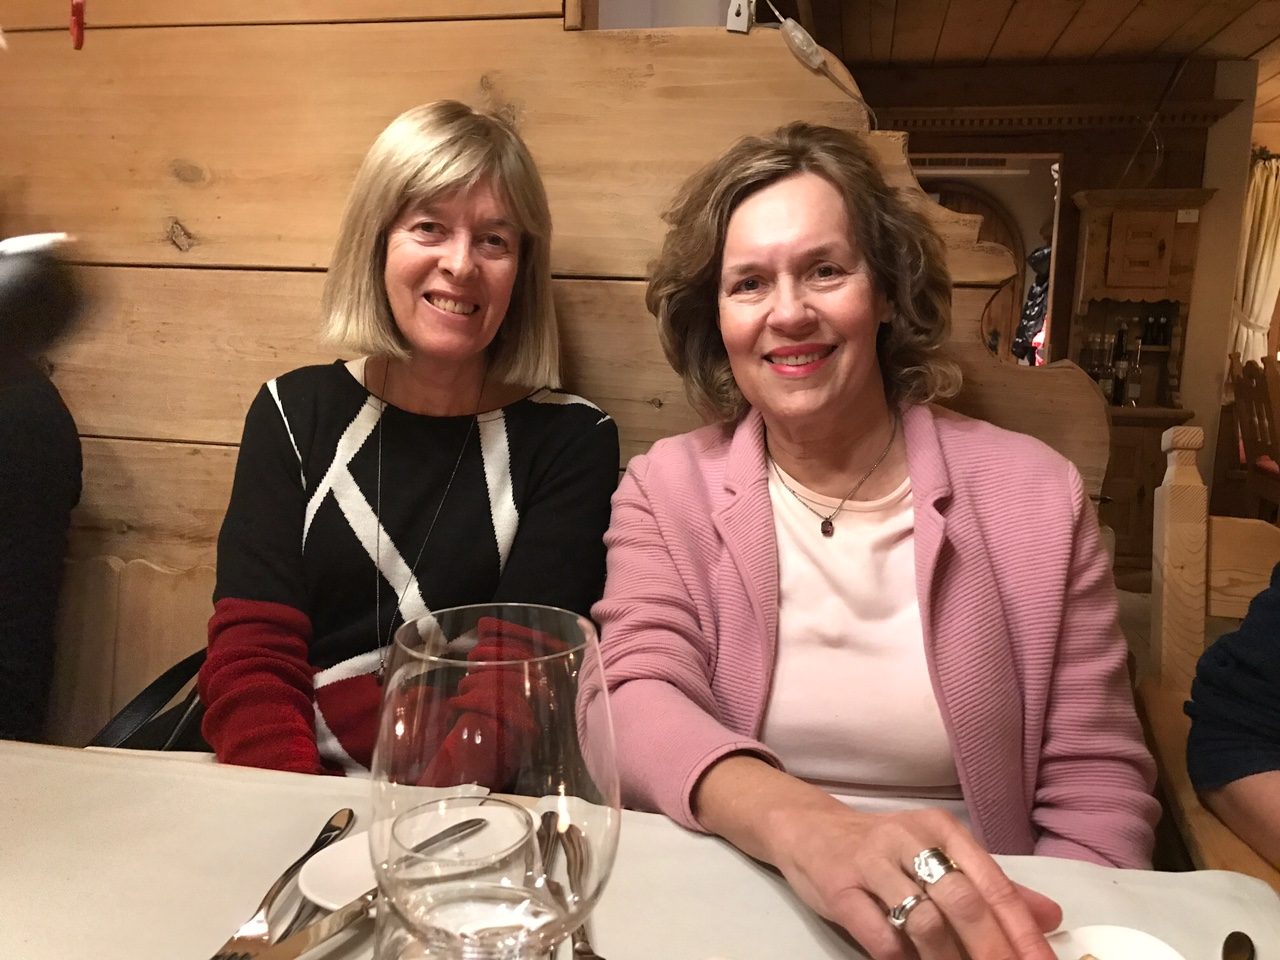 Nancy and Lorraine, Dec. 2017, Klosters, Switzerland